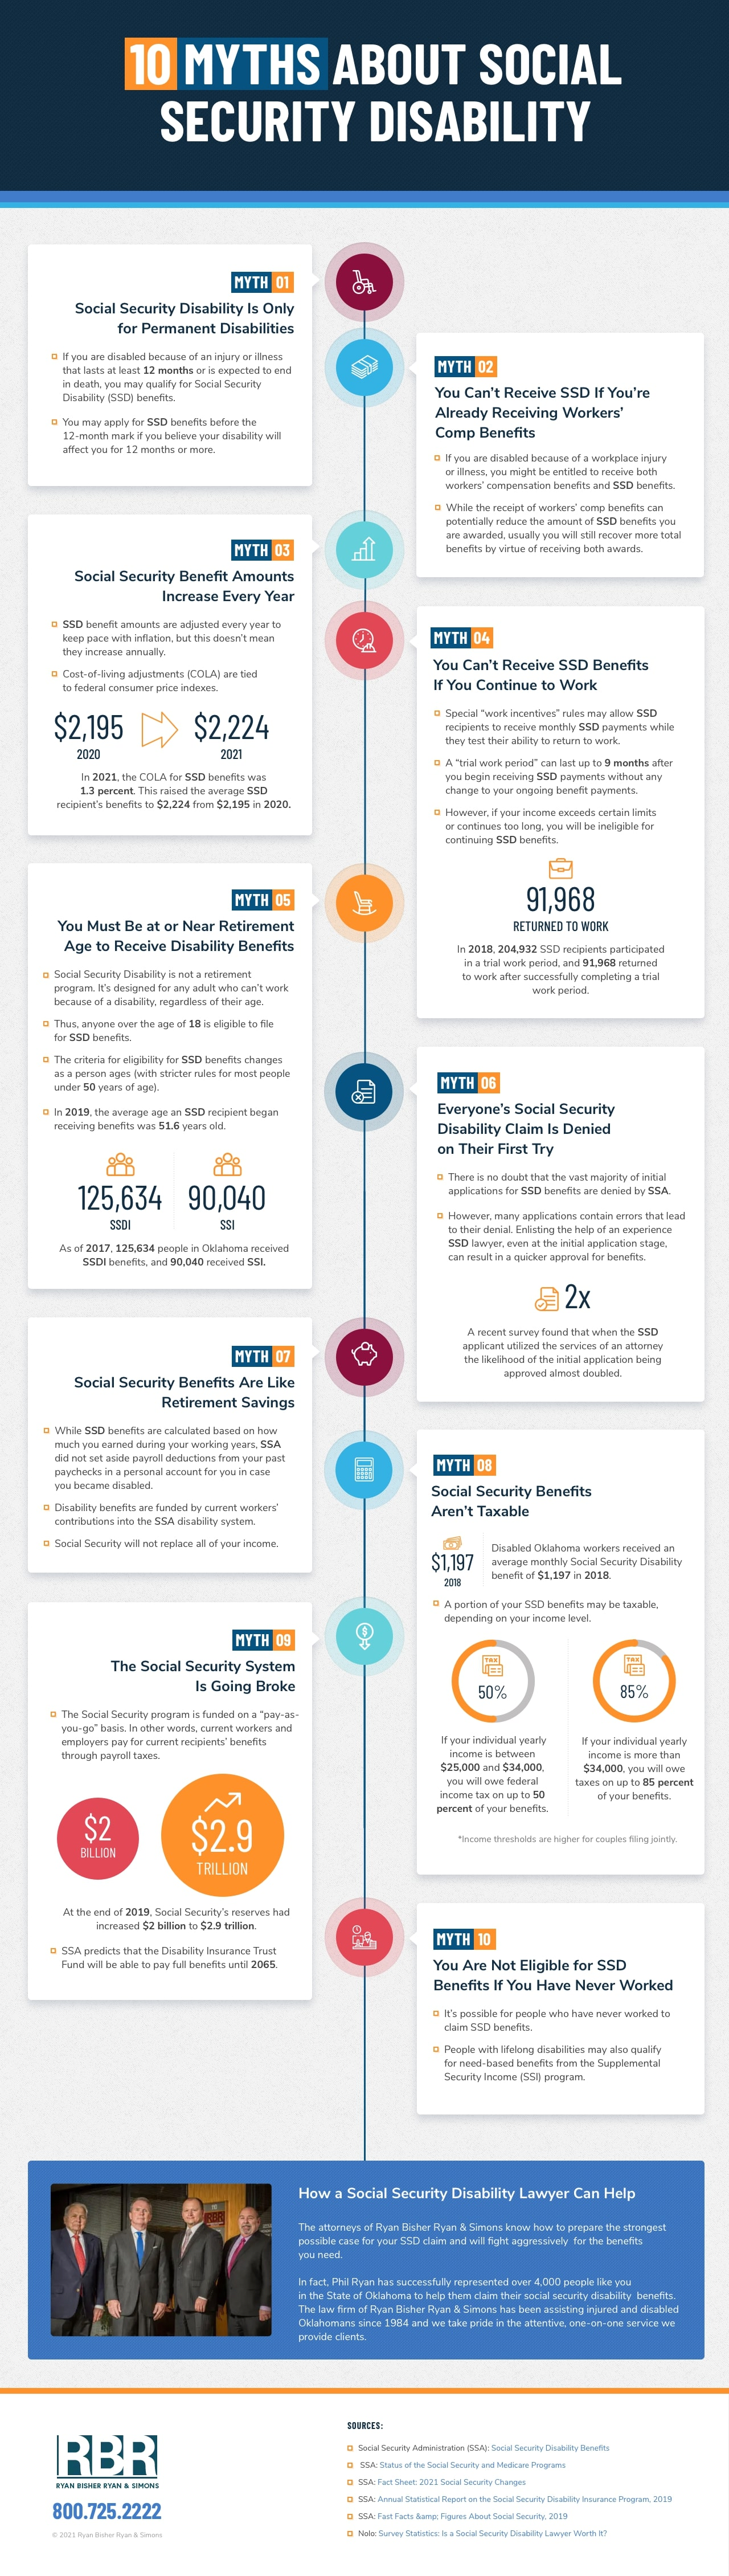 10 Myths About Social Security Disability - Ryan Bisher Ryan and Simons